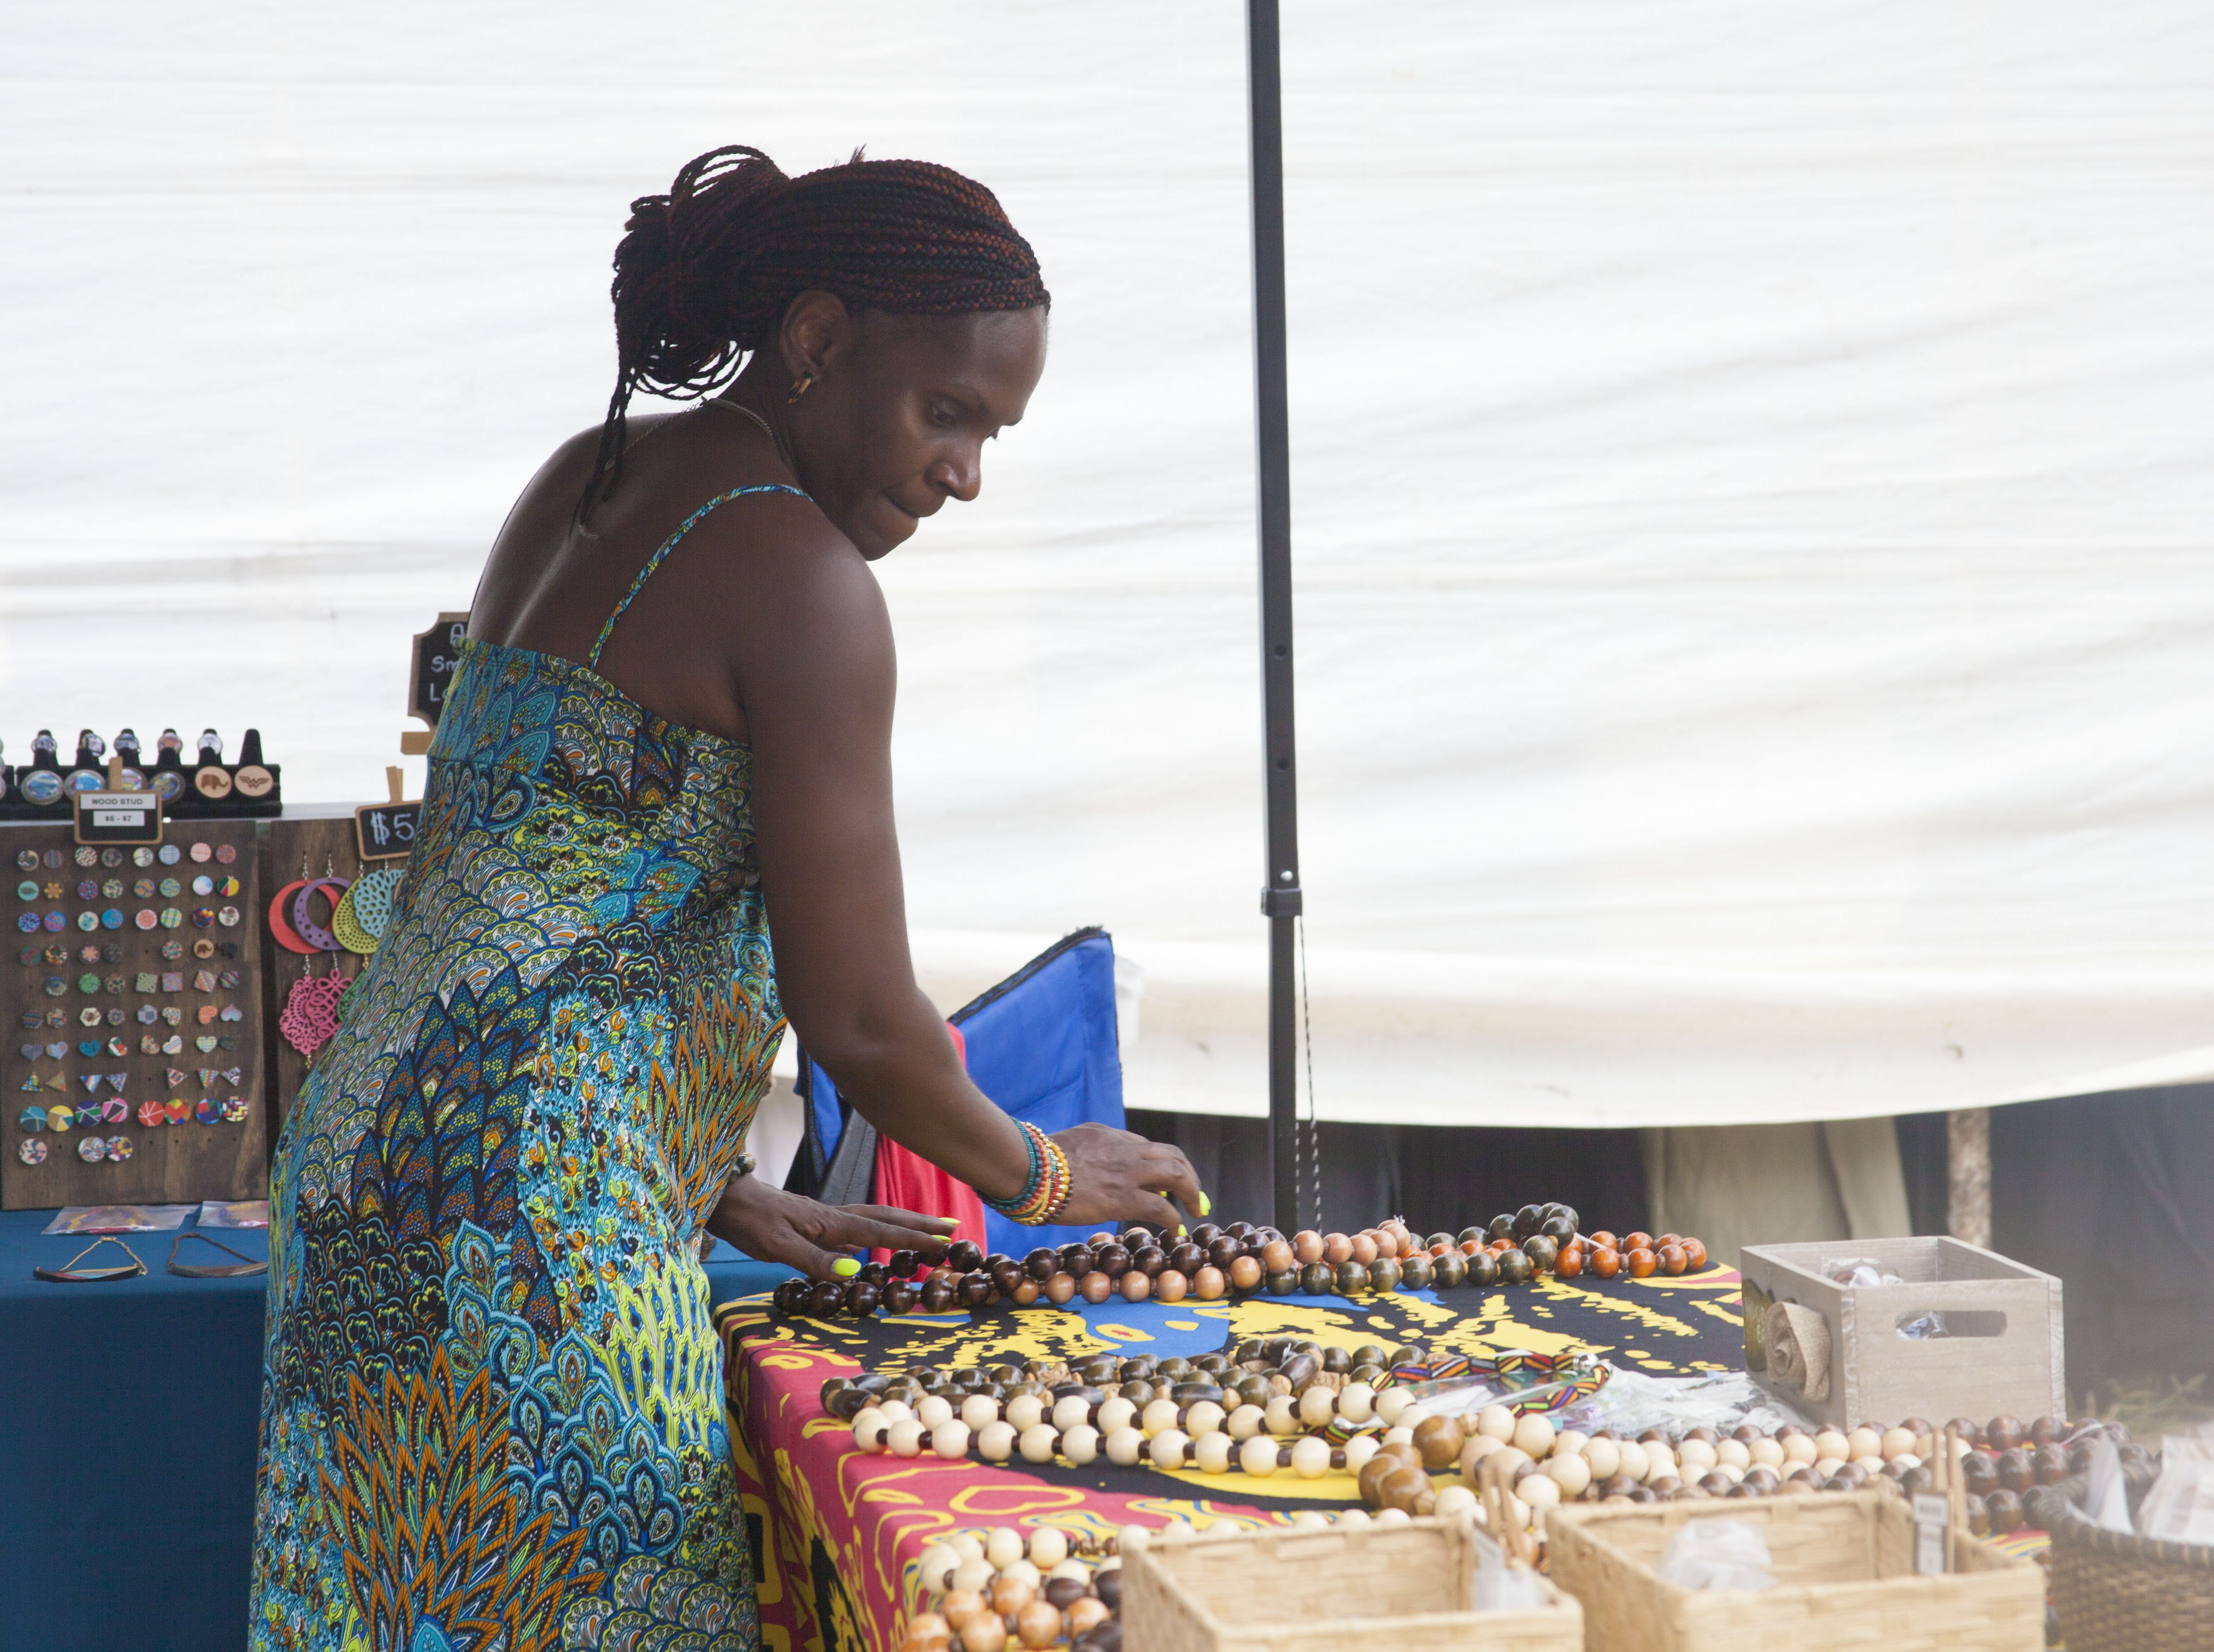 Kim Moore arranges Keenara Shawn's handmade jewelry at the 2018 Goombay Festival at the Roger McGuire Green in Pack Square Park on Sept. 8, 2018.